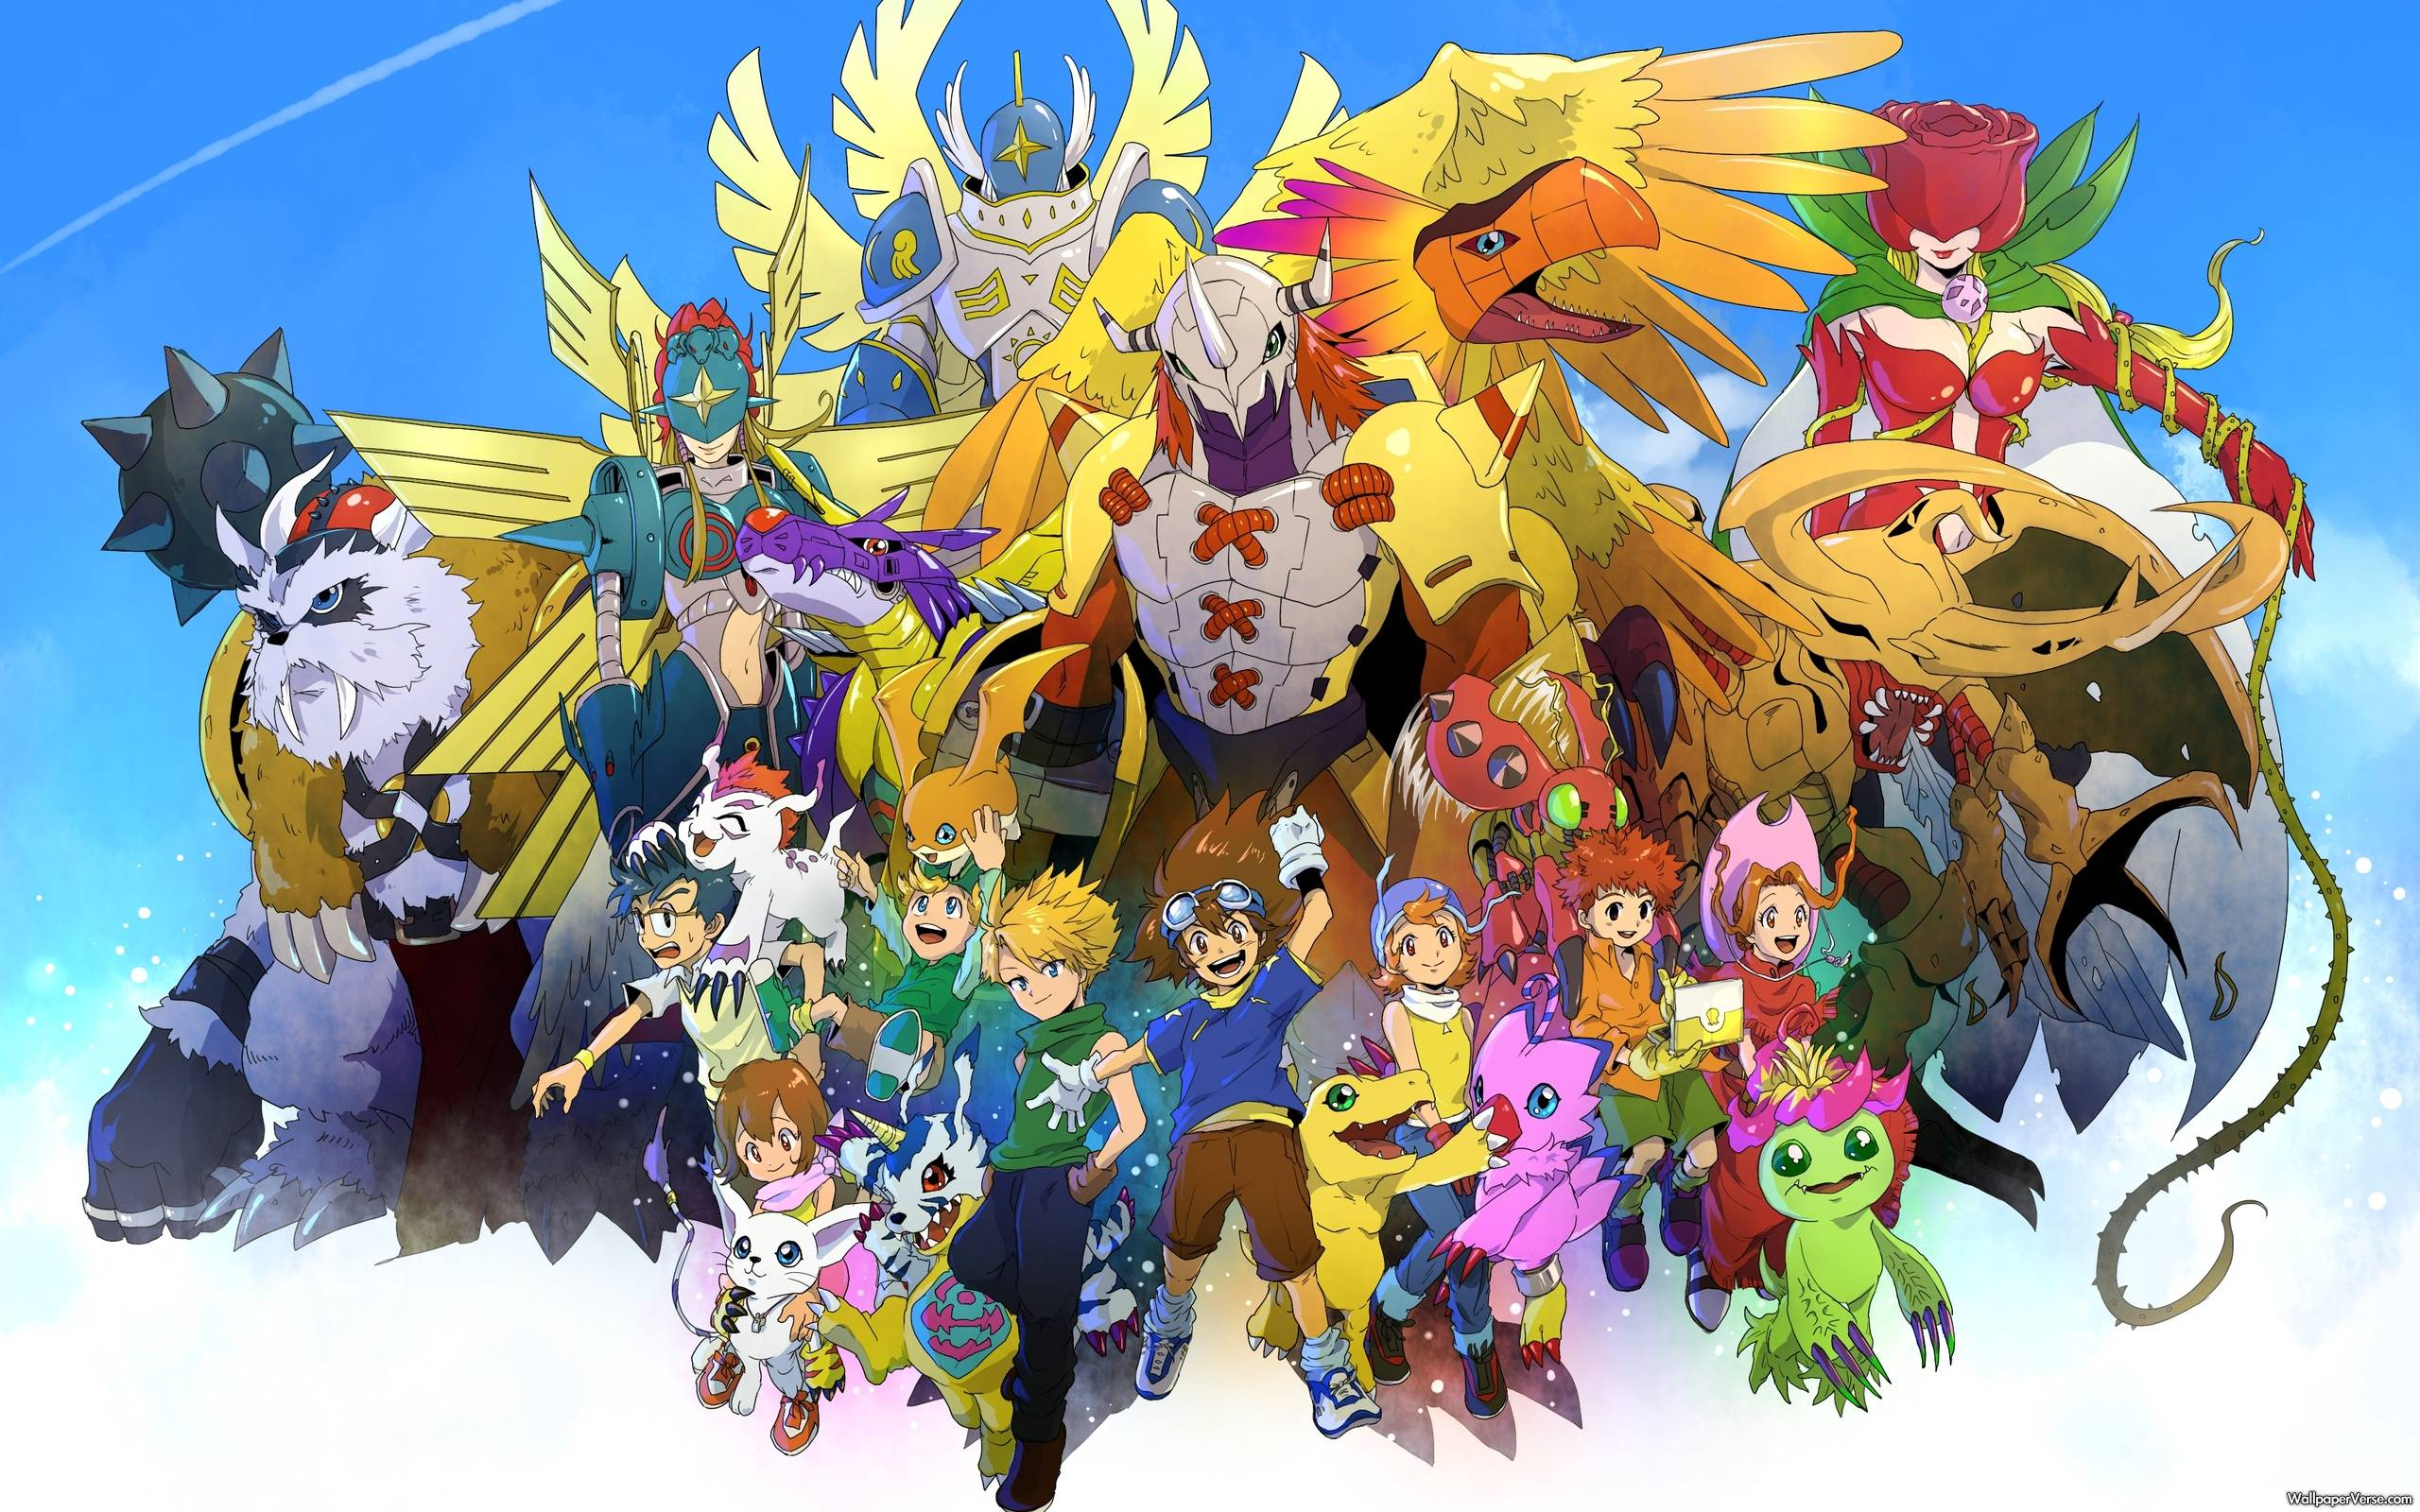 Digimon Wallpapers Wallpaper Cave HD Wallpapers Download Free Images Wallpaper [1000image.com]